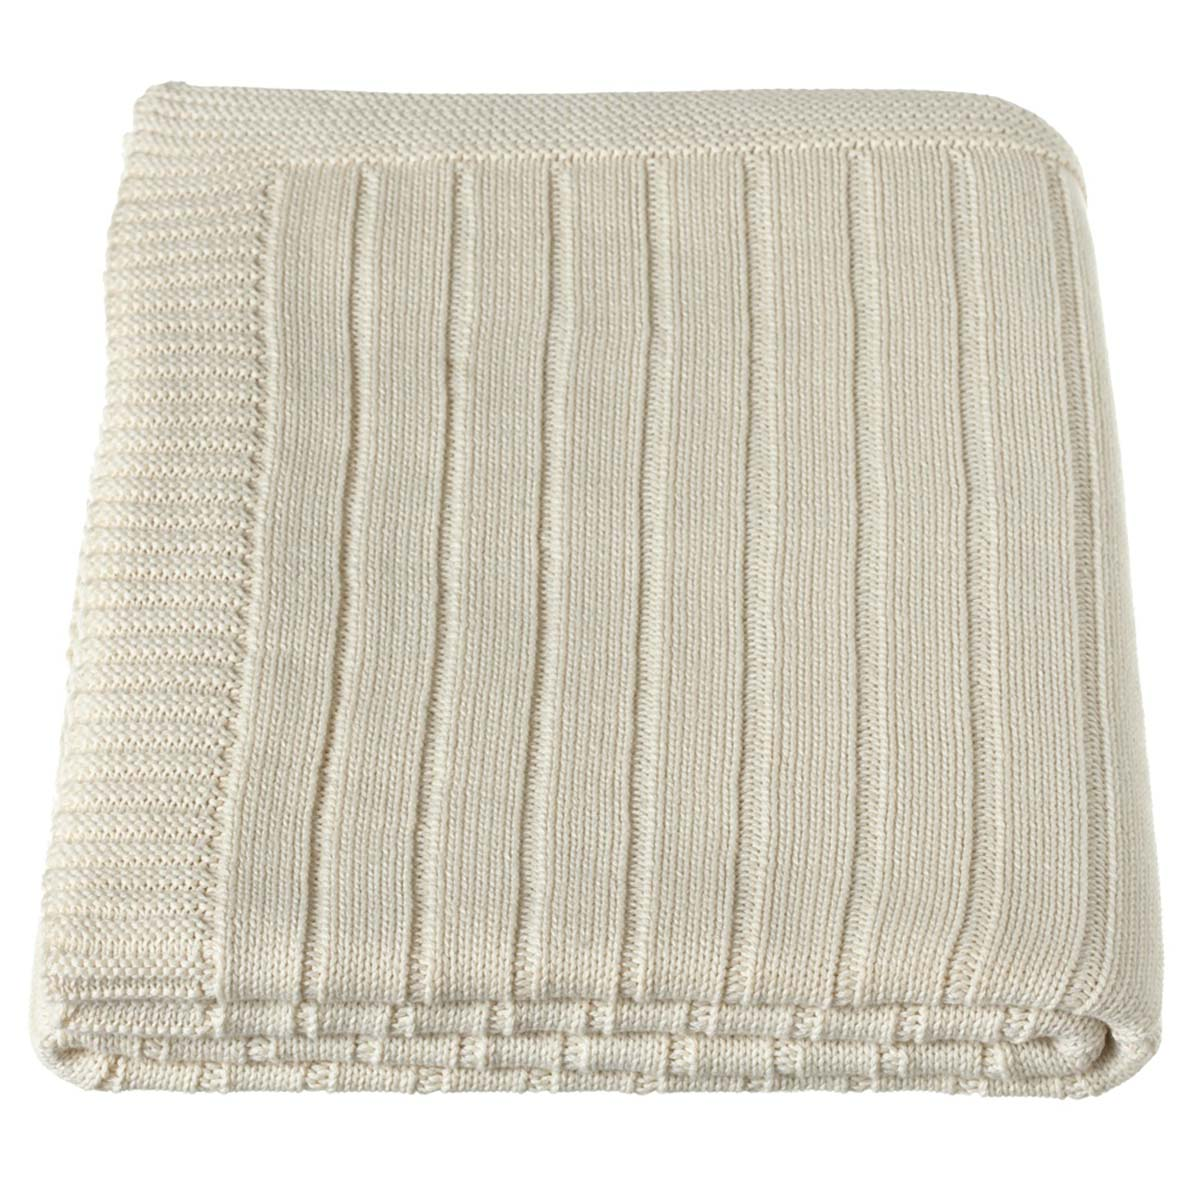 Throw - Cream, Ribbed Knit